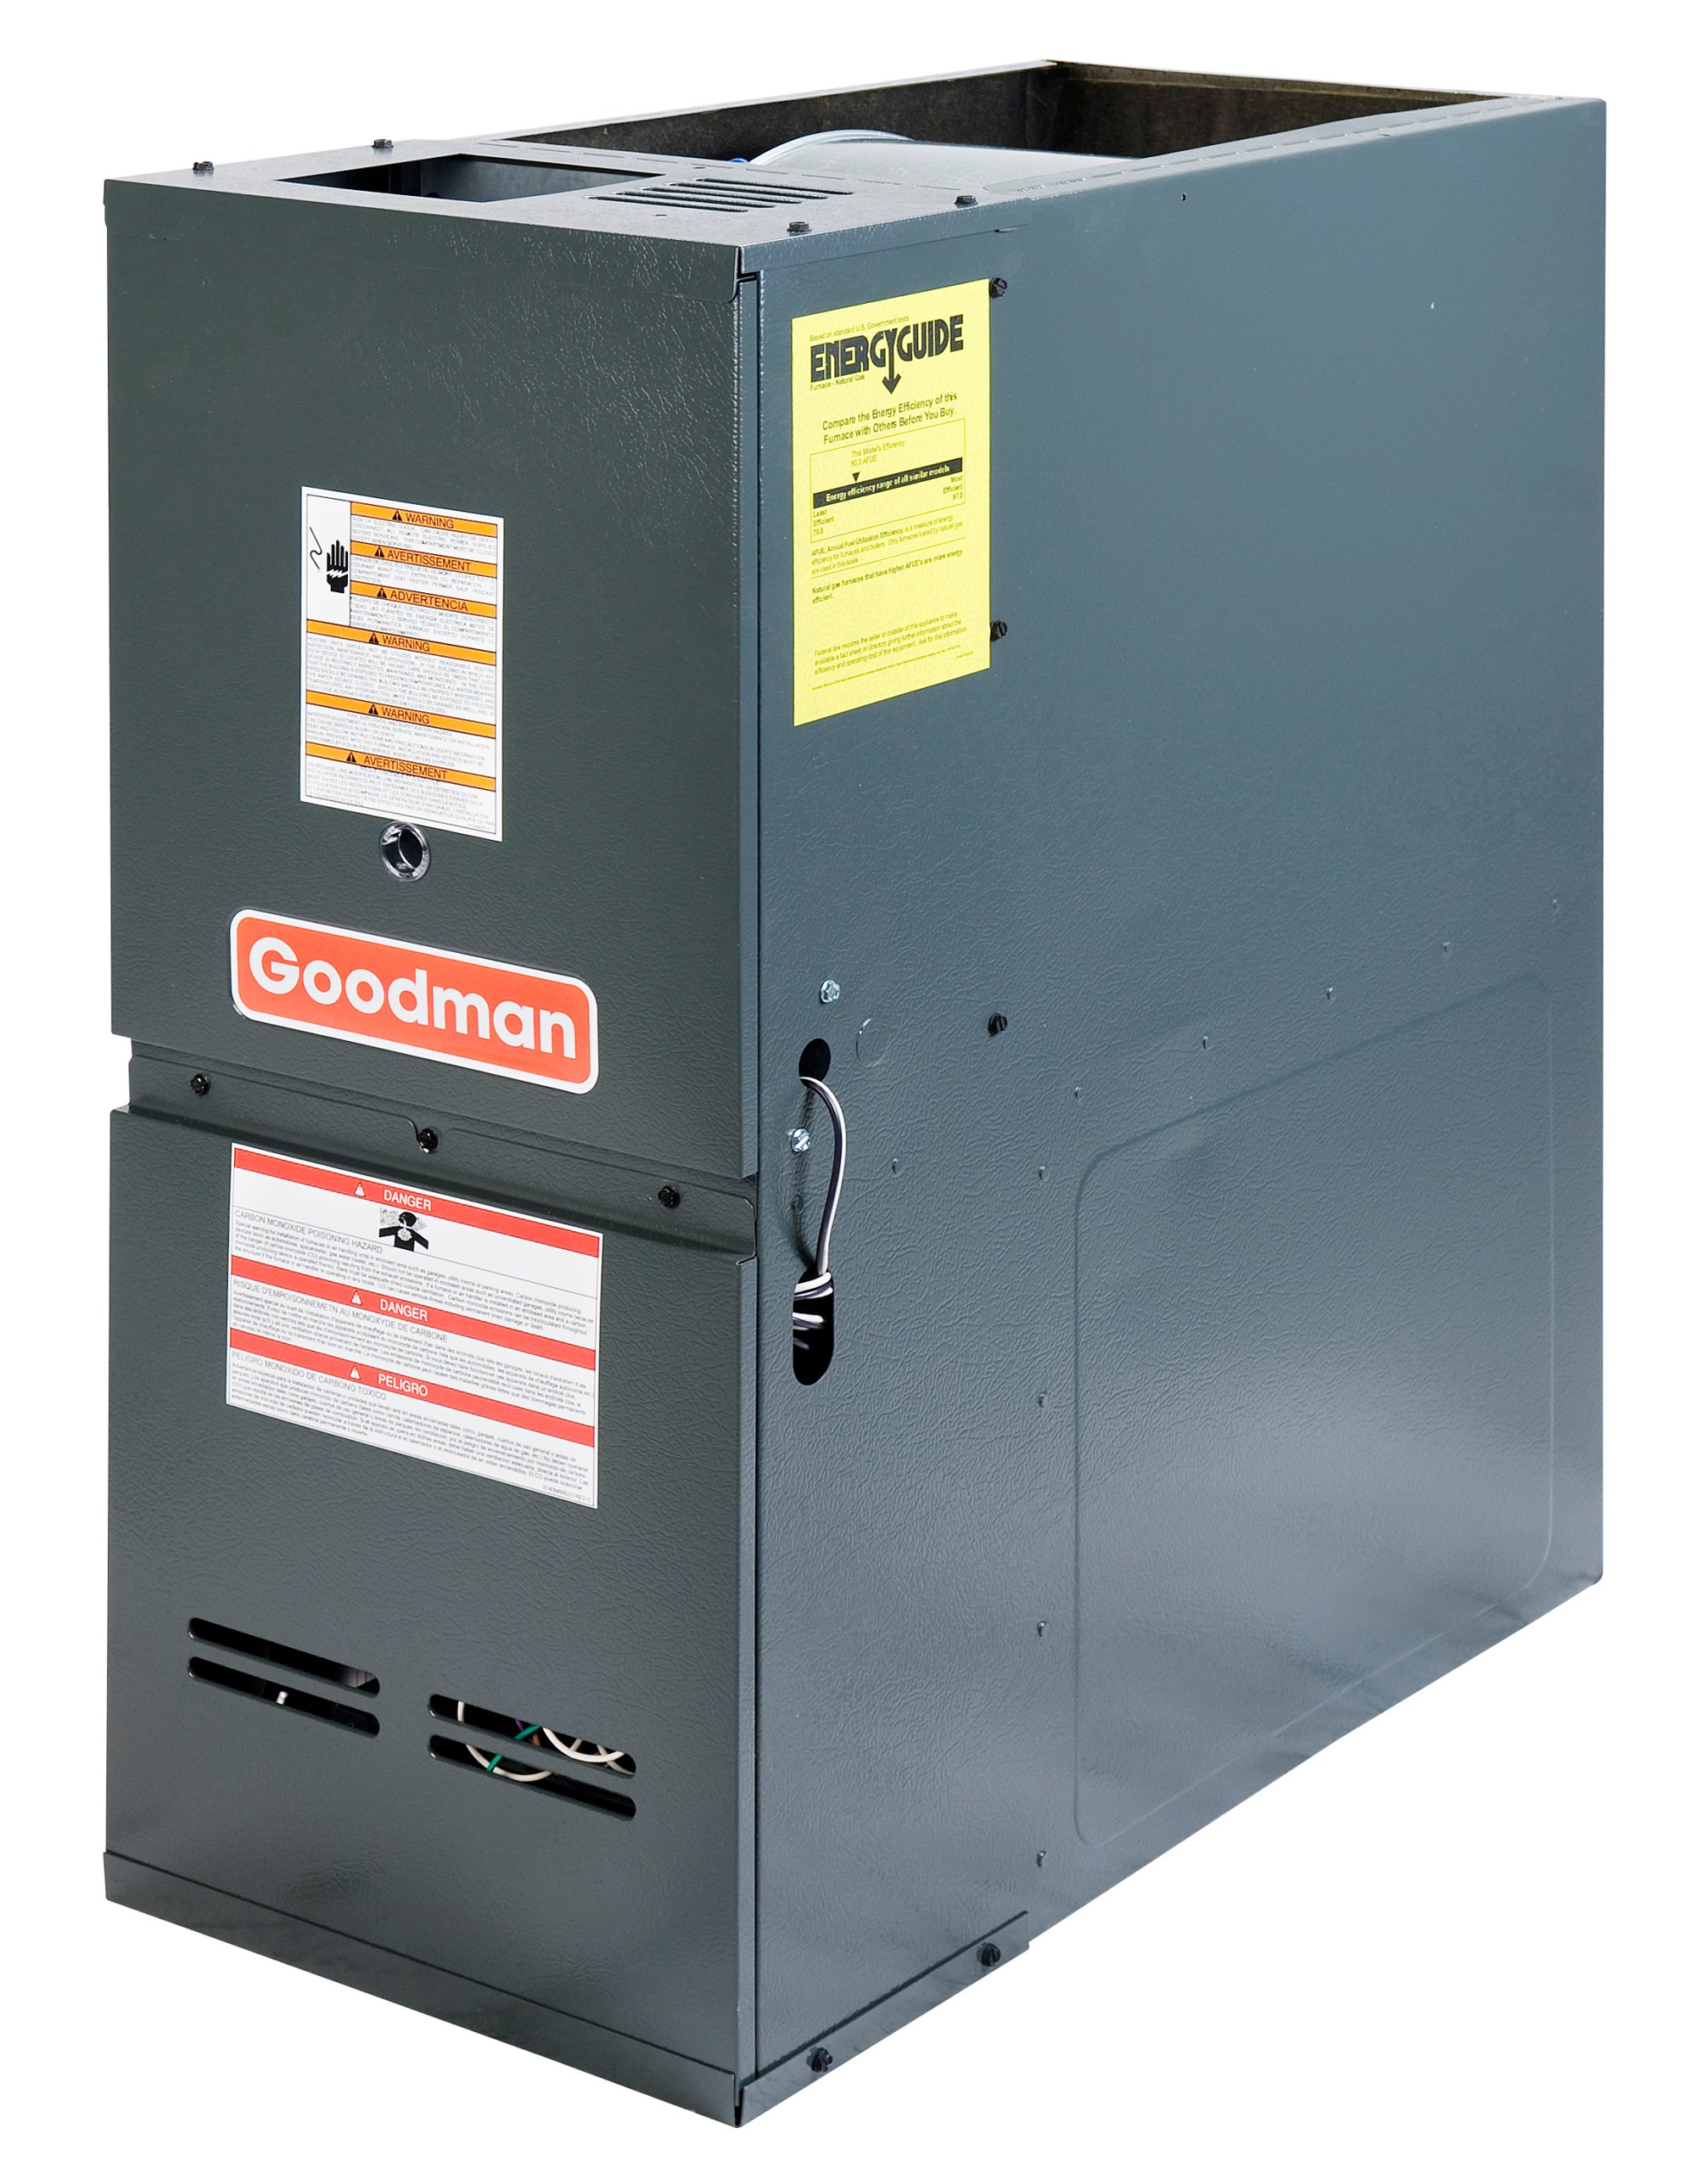 hight resolution of goodman gdh81005cn 100 000 btu furnace 80 efficiency 2 stage burner 2 000 cfm multi speed blower dedicated downflow application